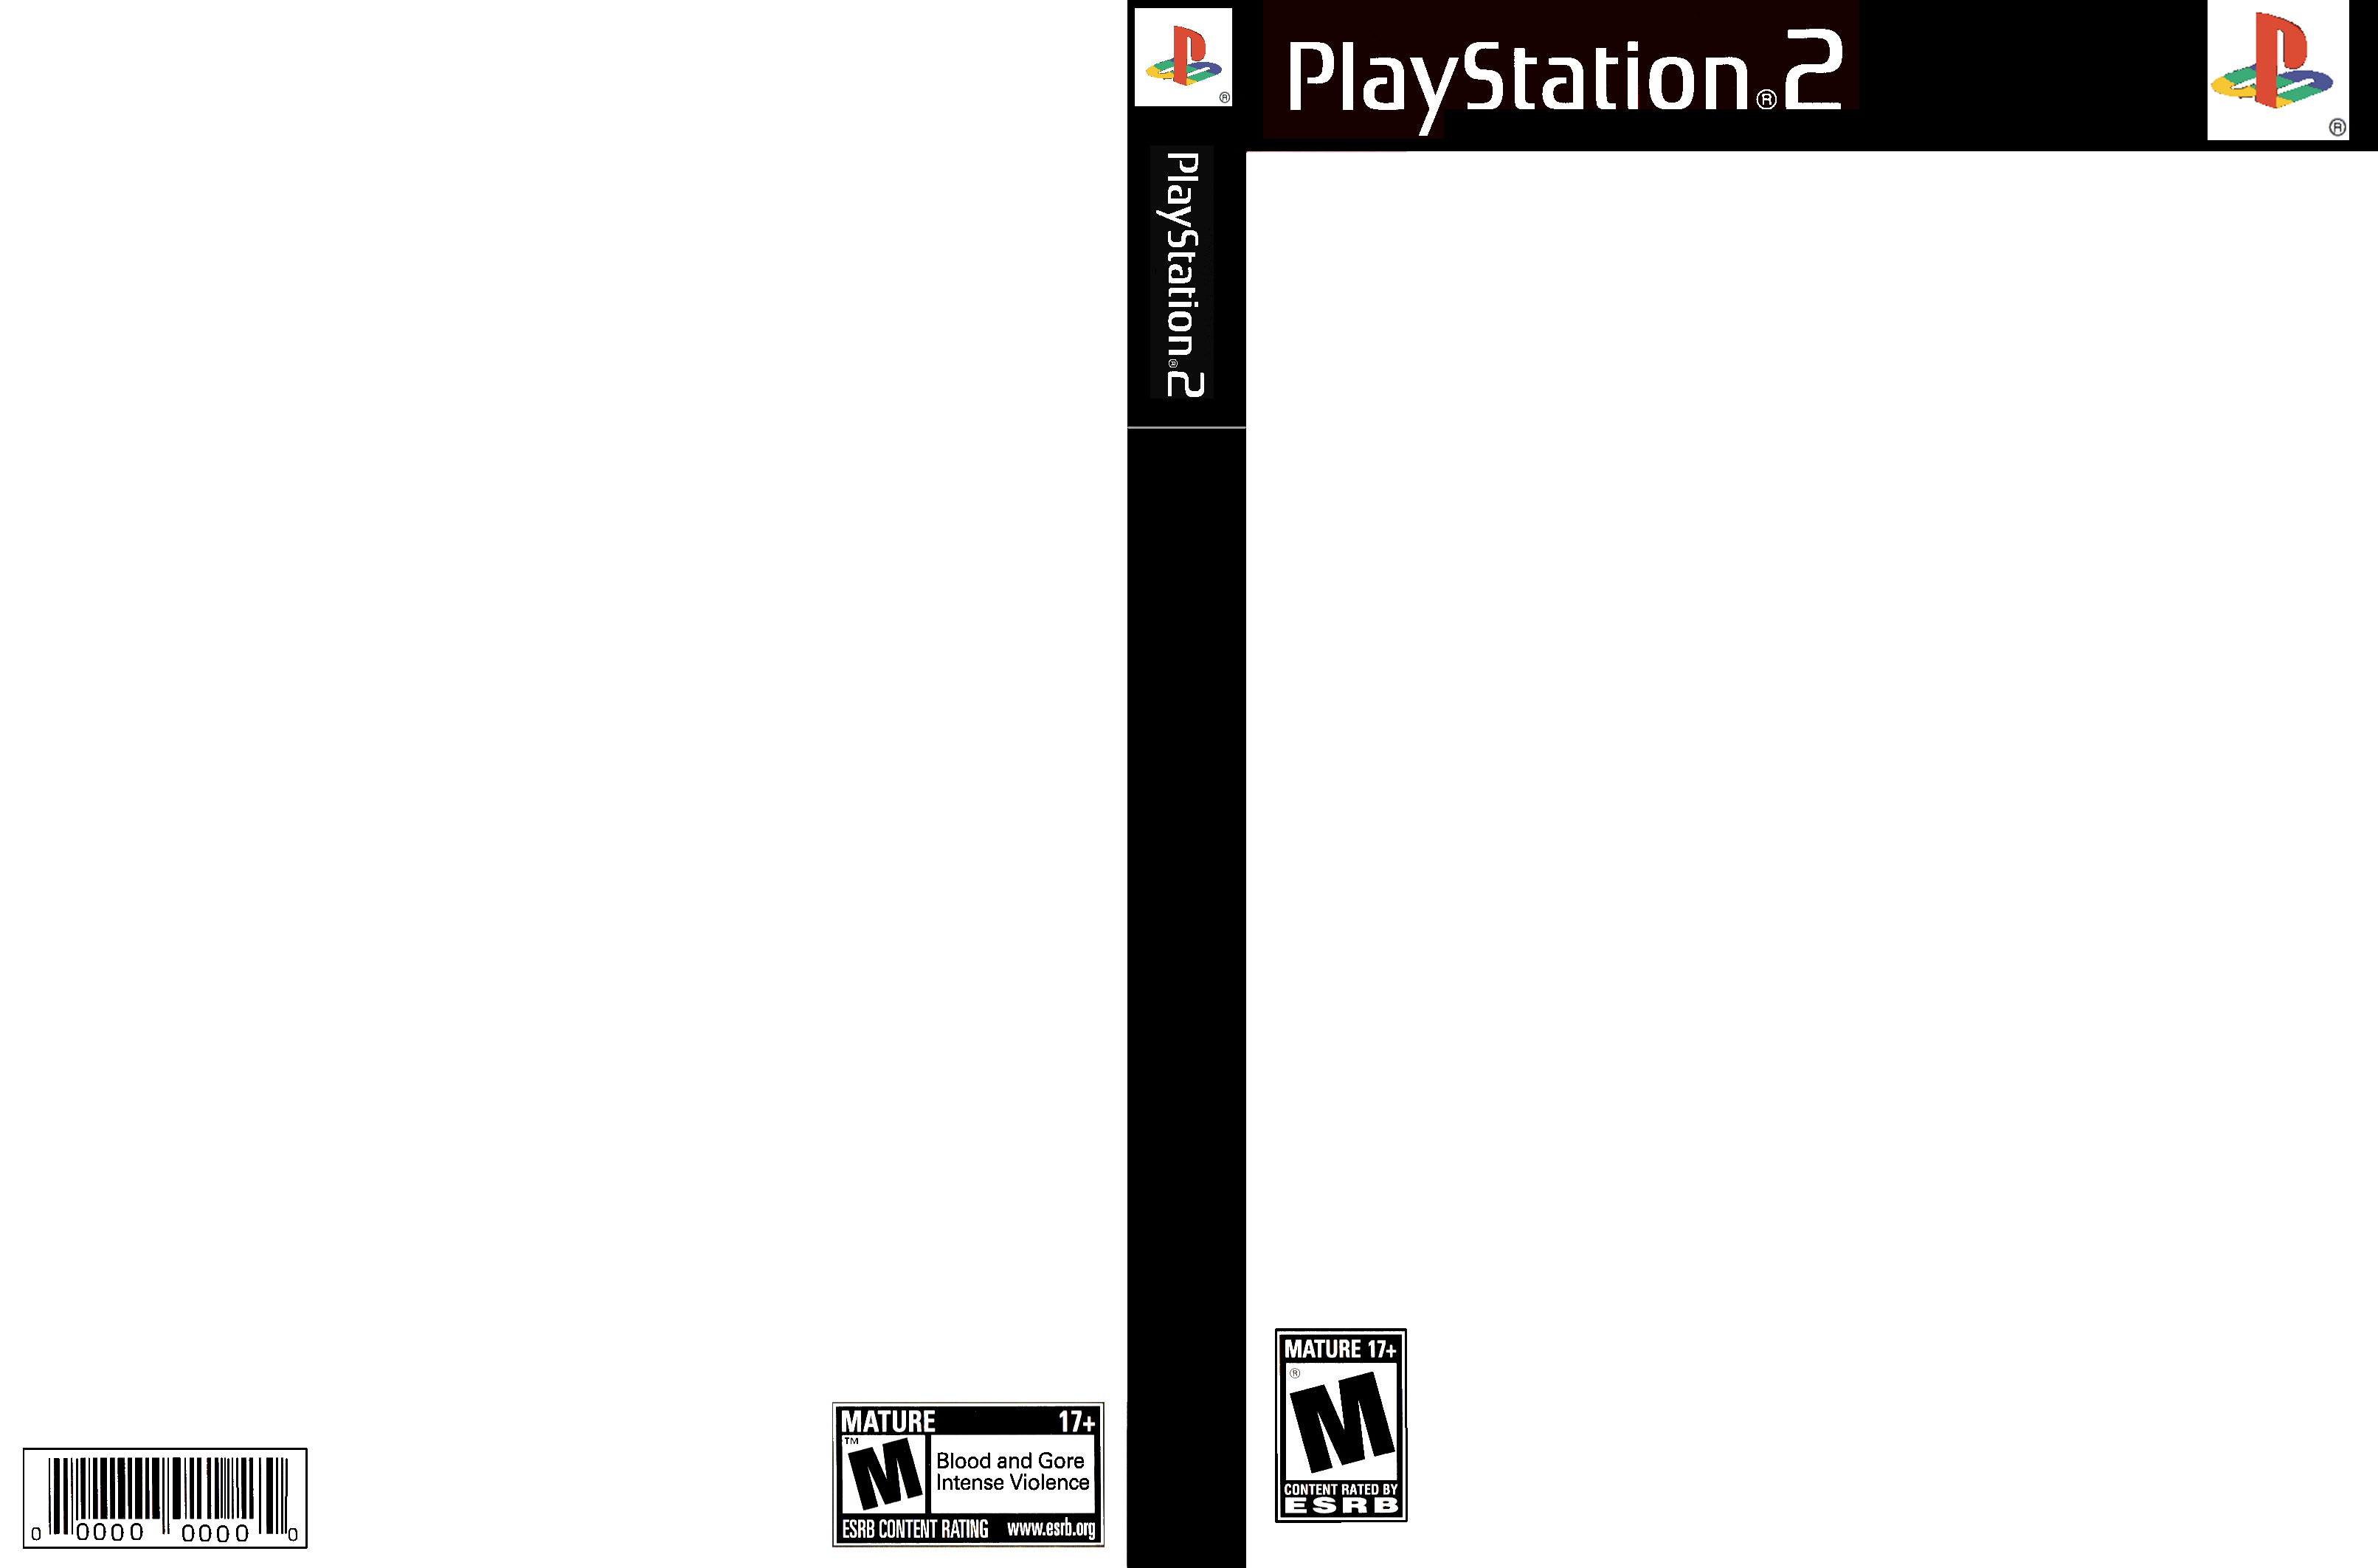 ps2 game full cover template by reddog-f6 on DeviantArt